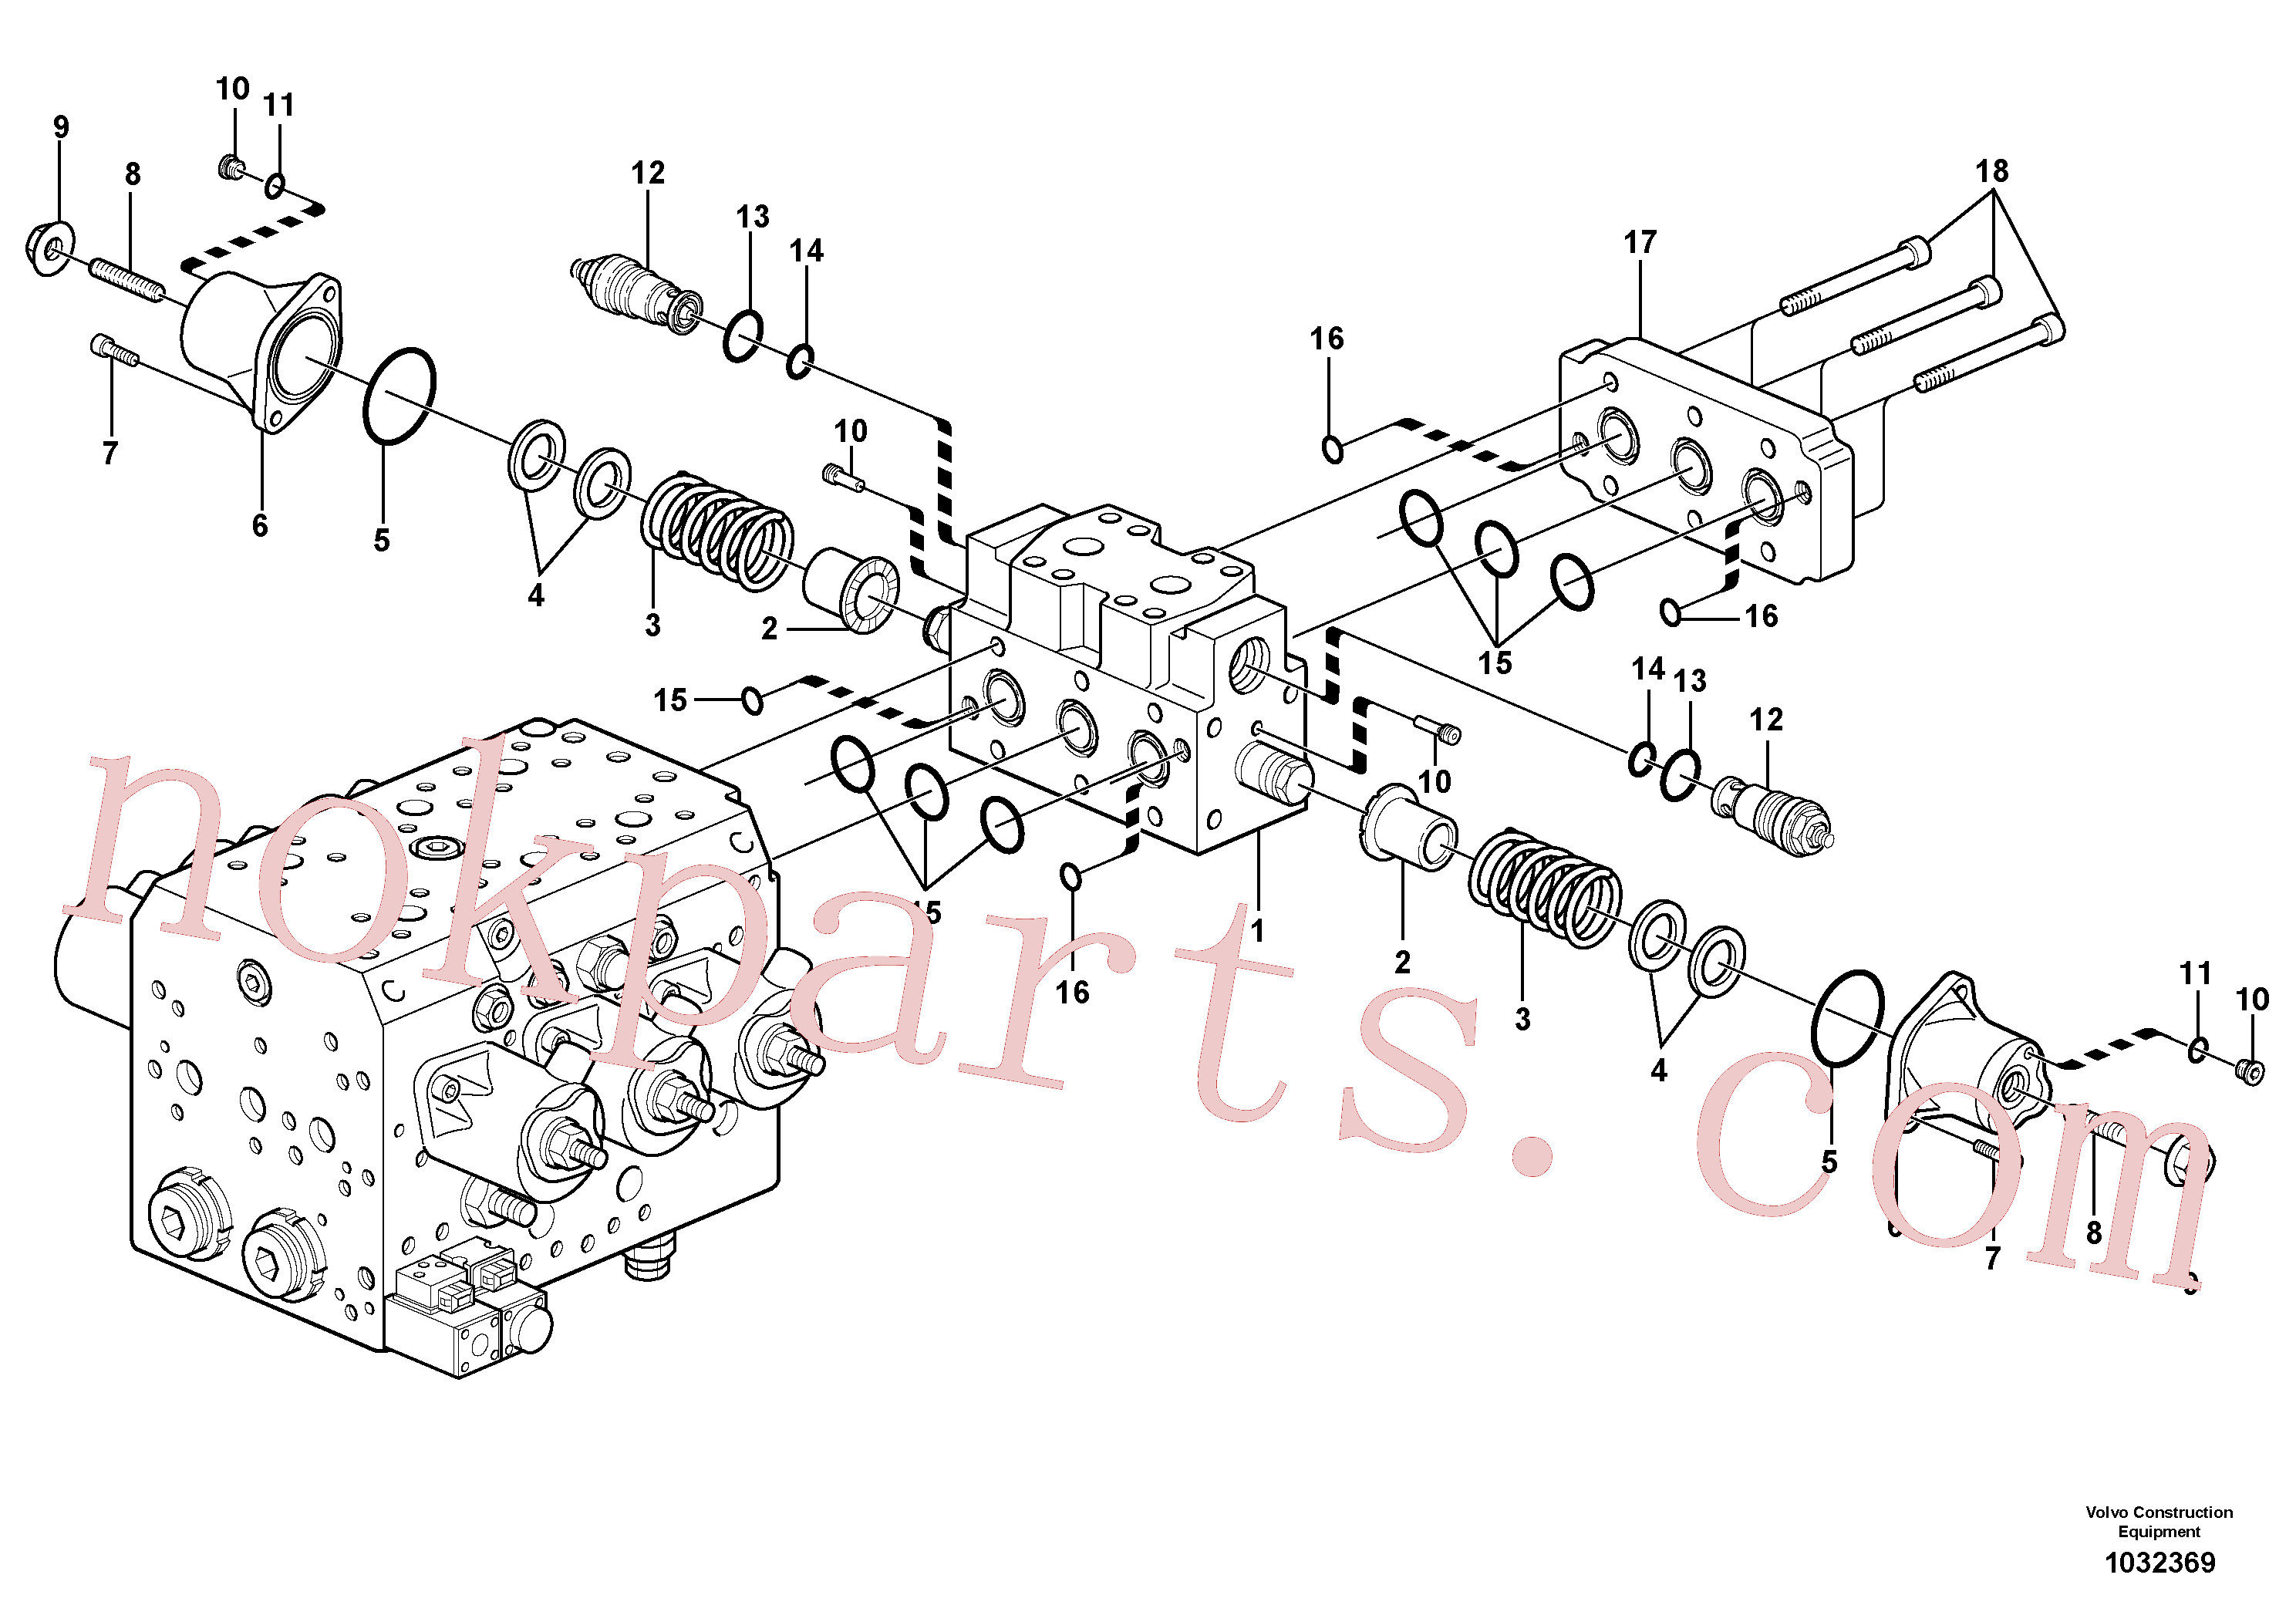 VOE11711036 for Volvo Hydraulic valve, X1(1032369 assembly)